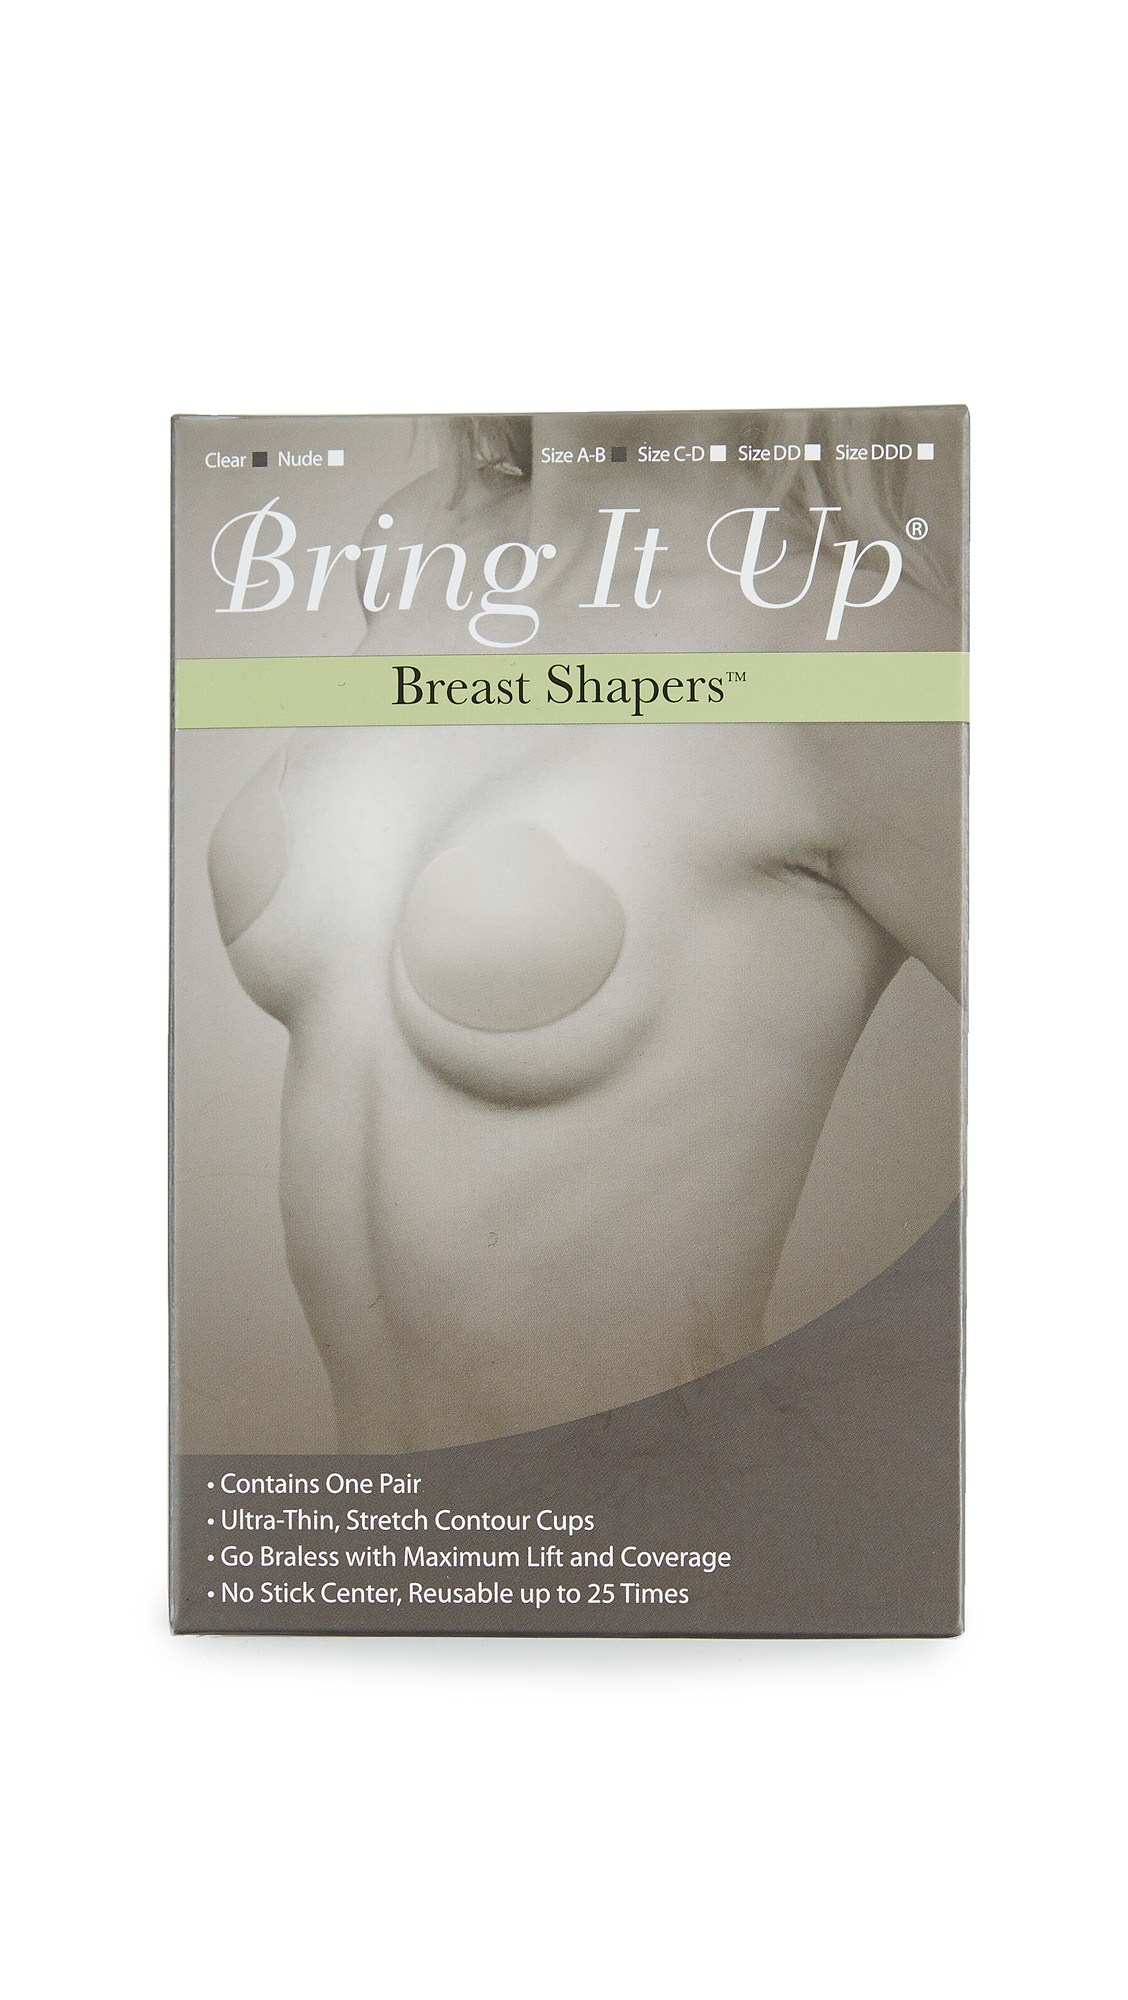 Bring It Up Breast Shapers